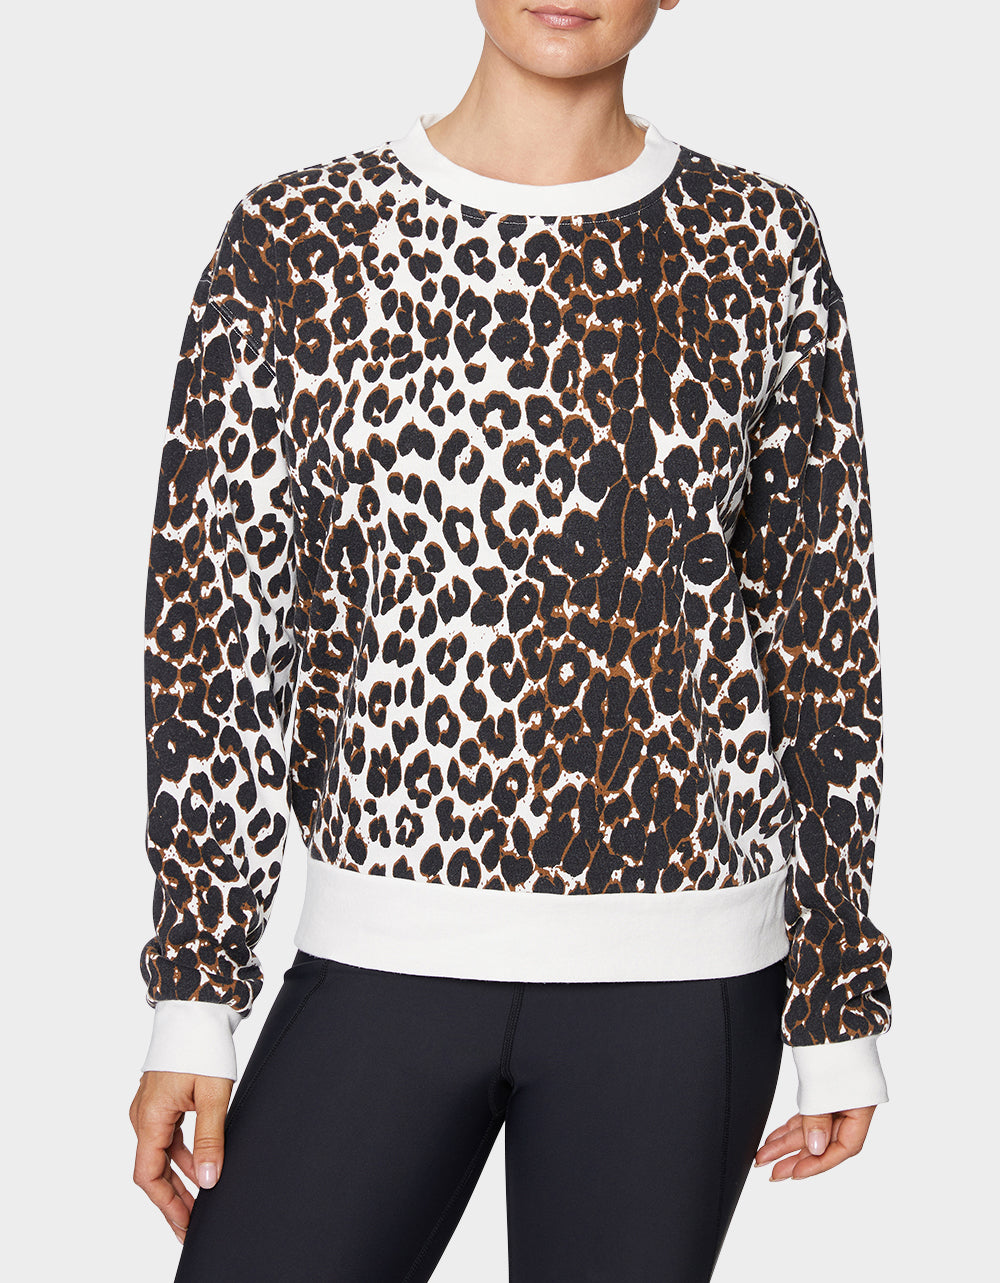 CAPRI LEOPARD SWEATSHIRT LEOPARD - APPAREL - Betsey Johnson